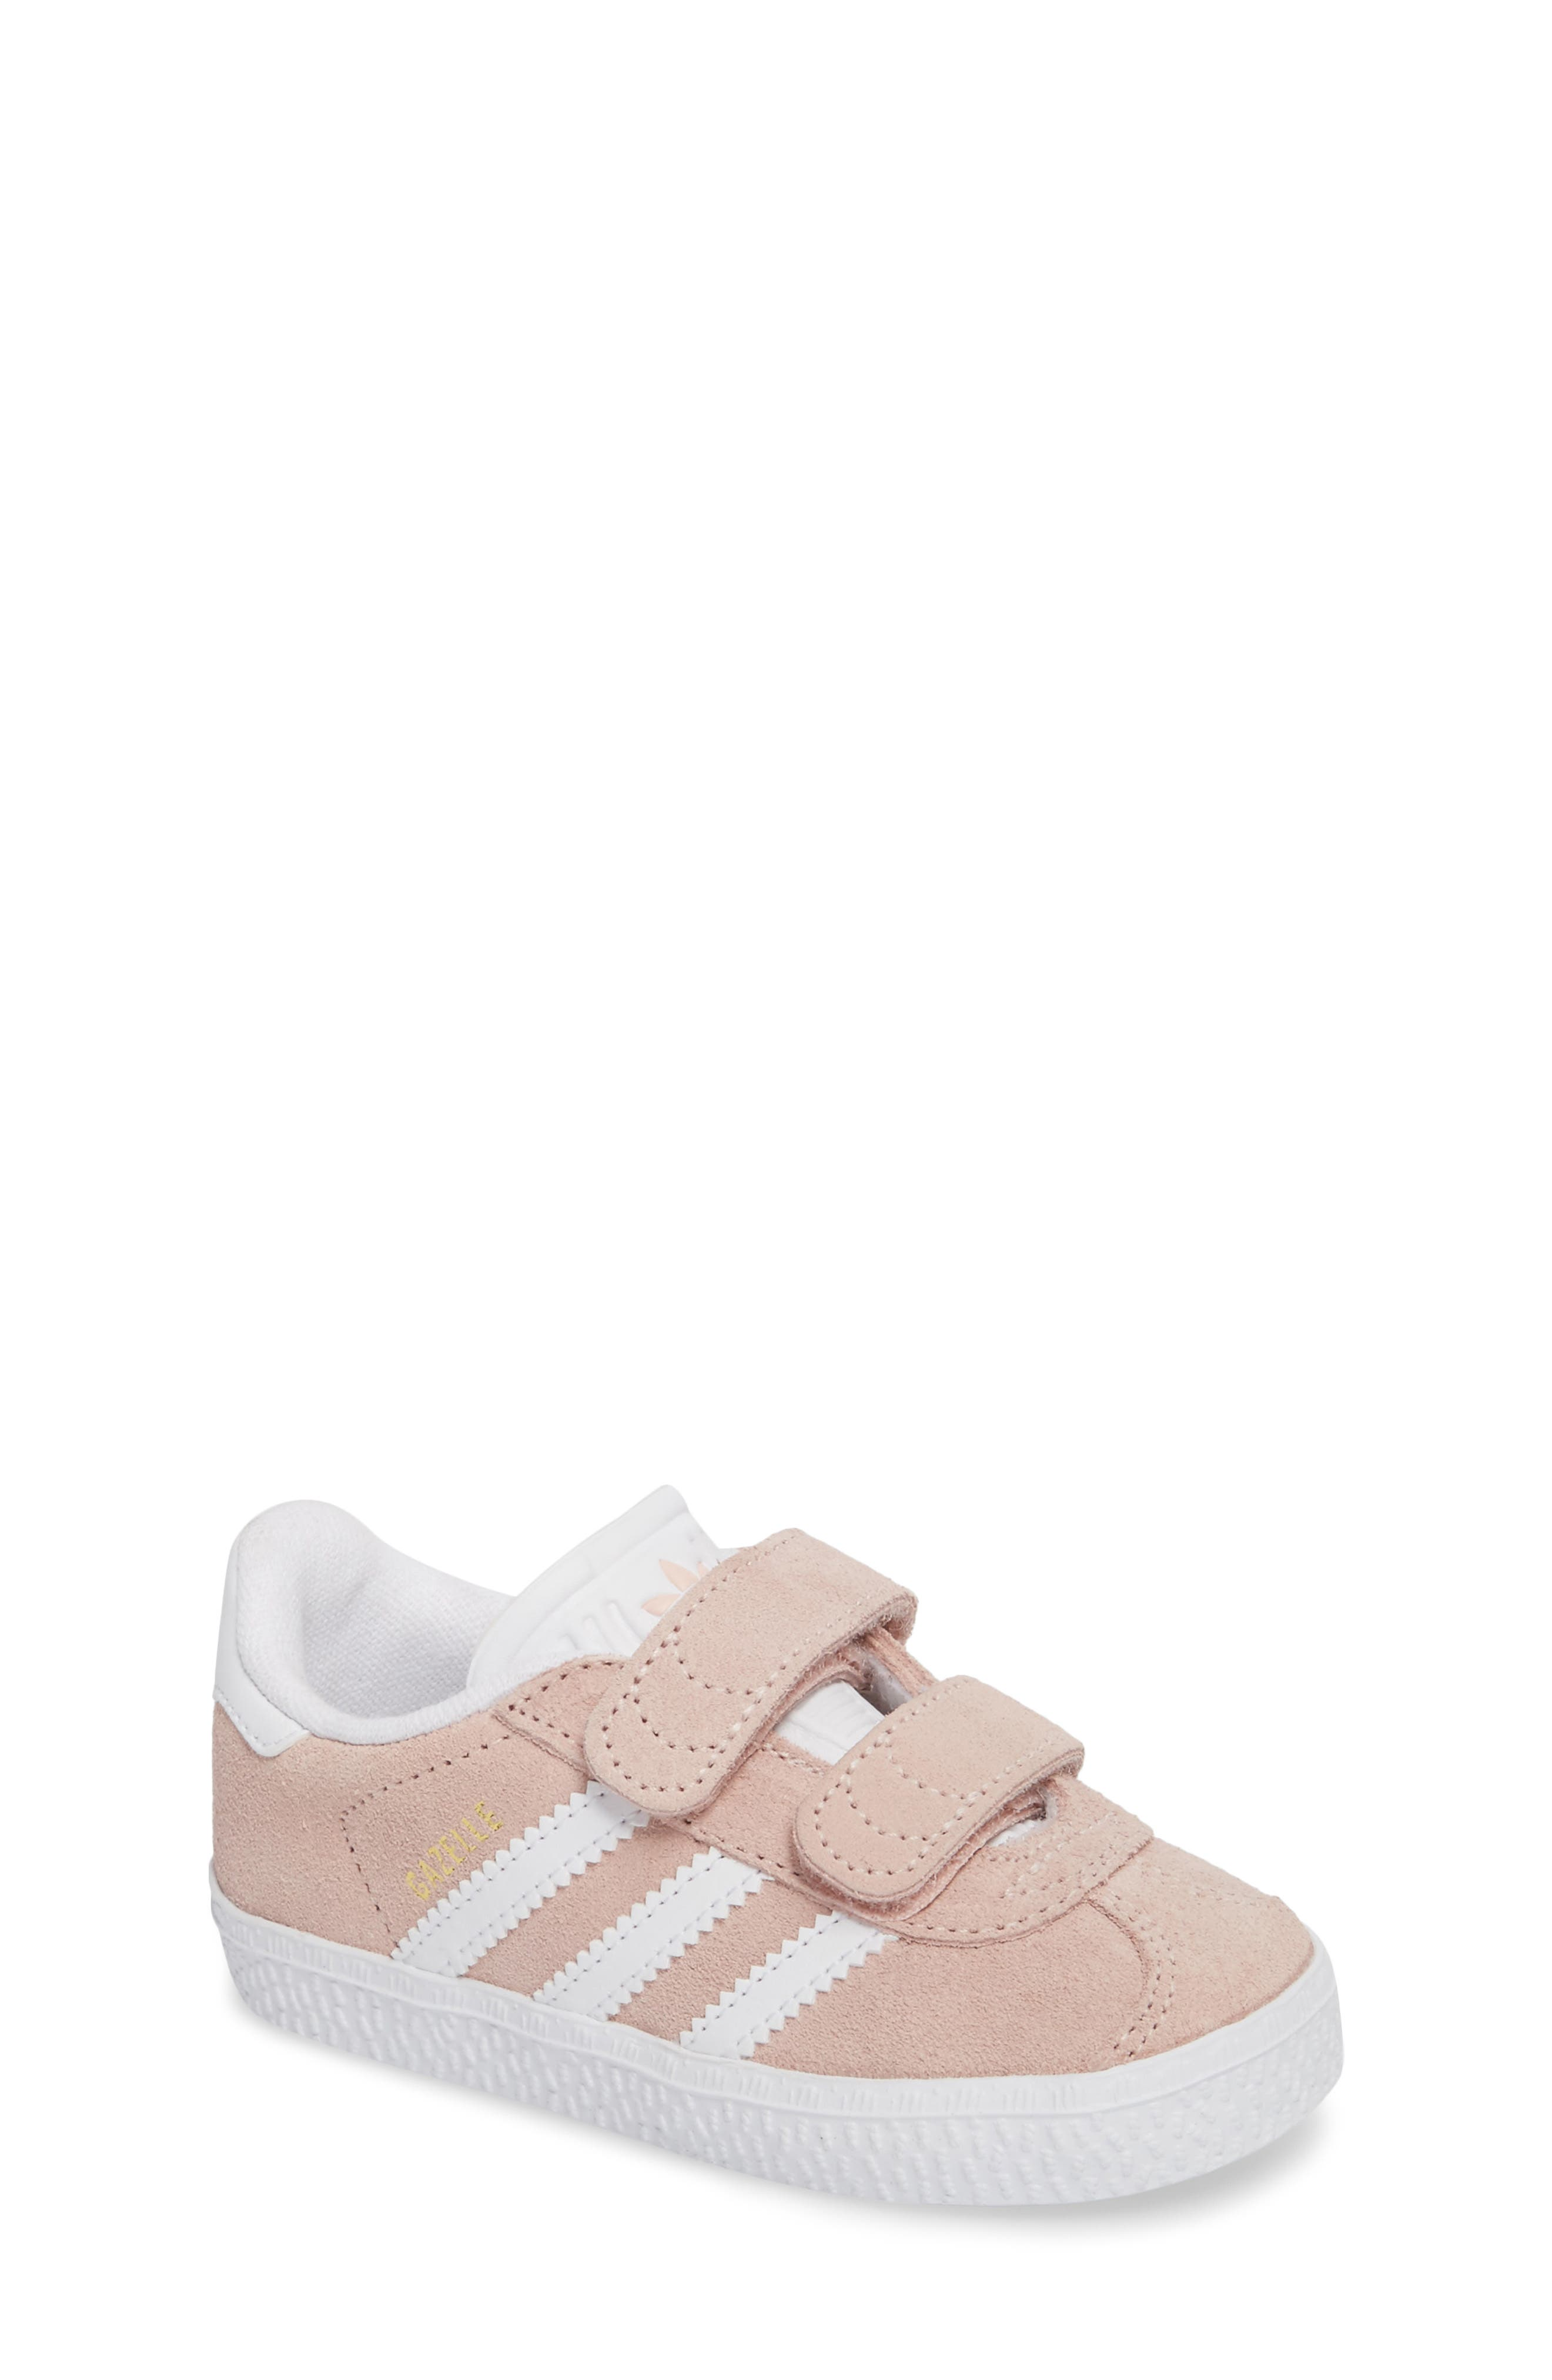 Gazelle Sneaker,                         Main,                         color, Icey Pink / White / White